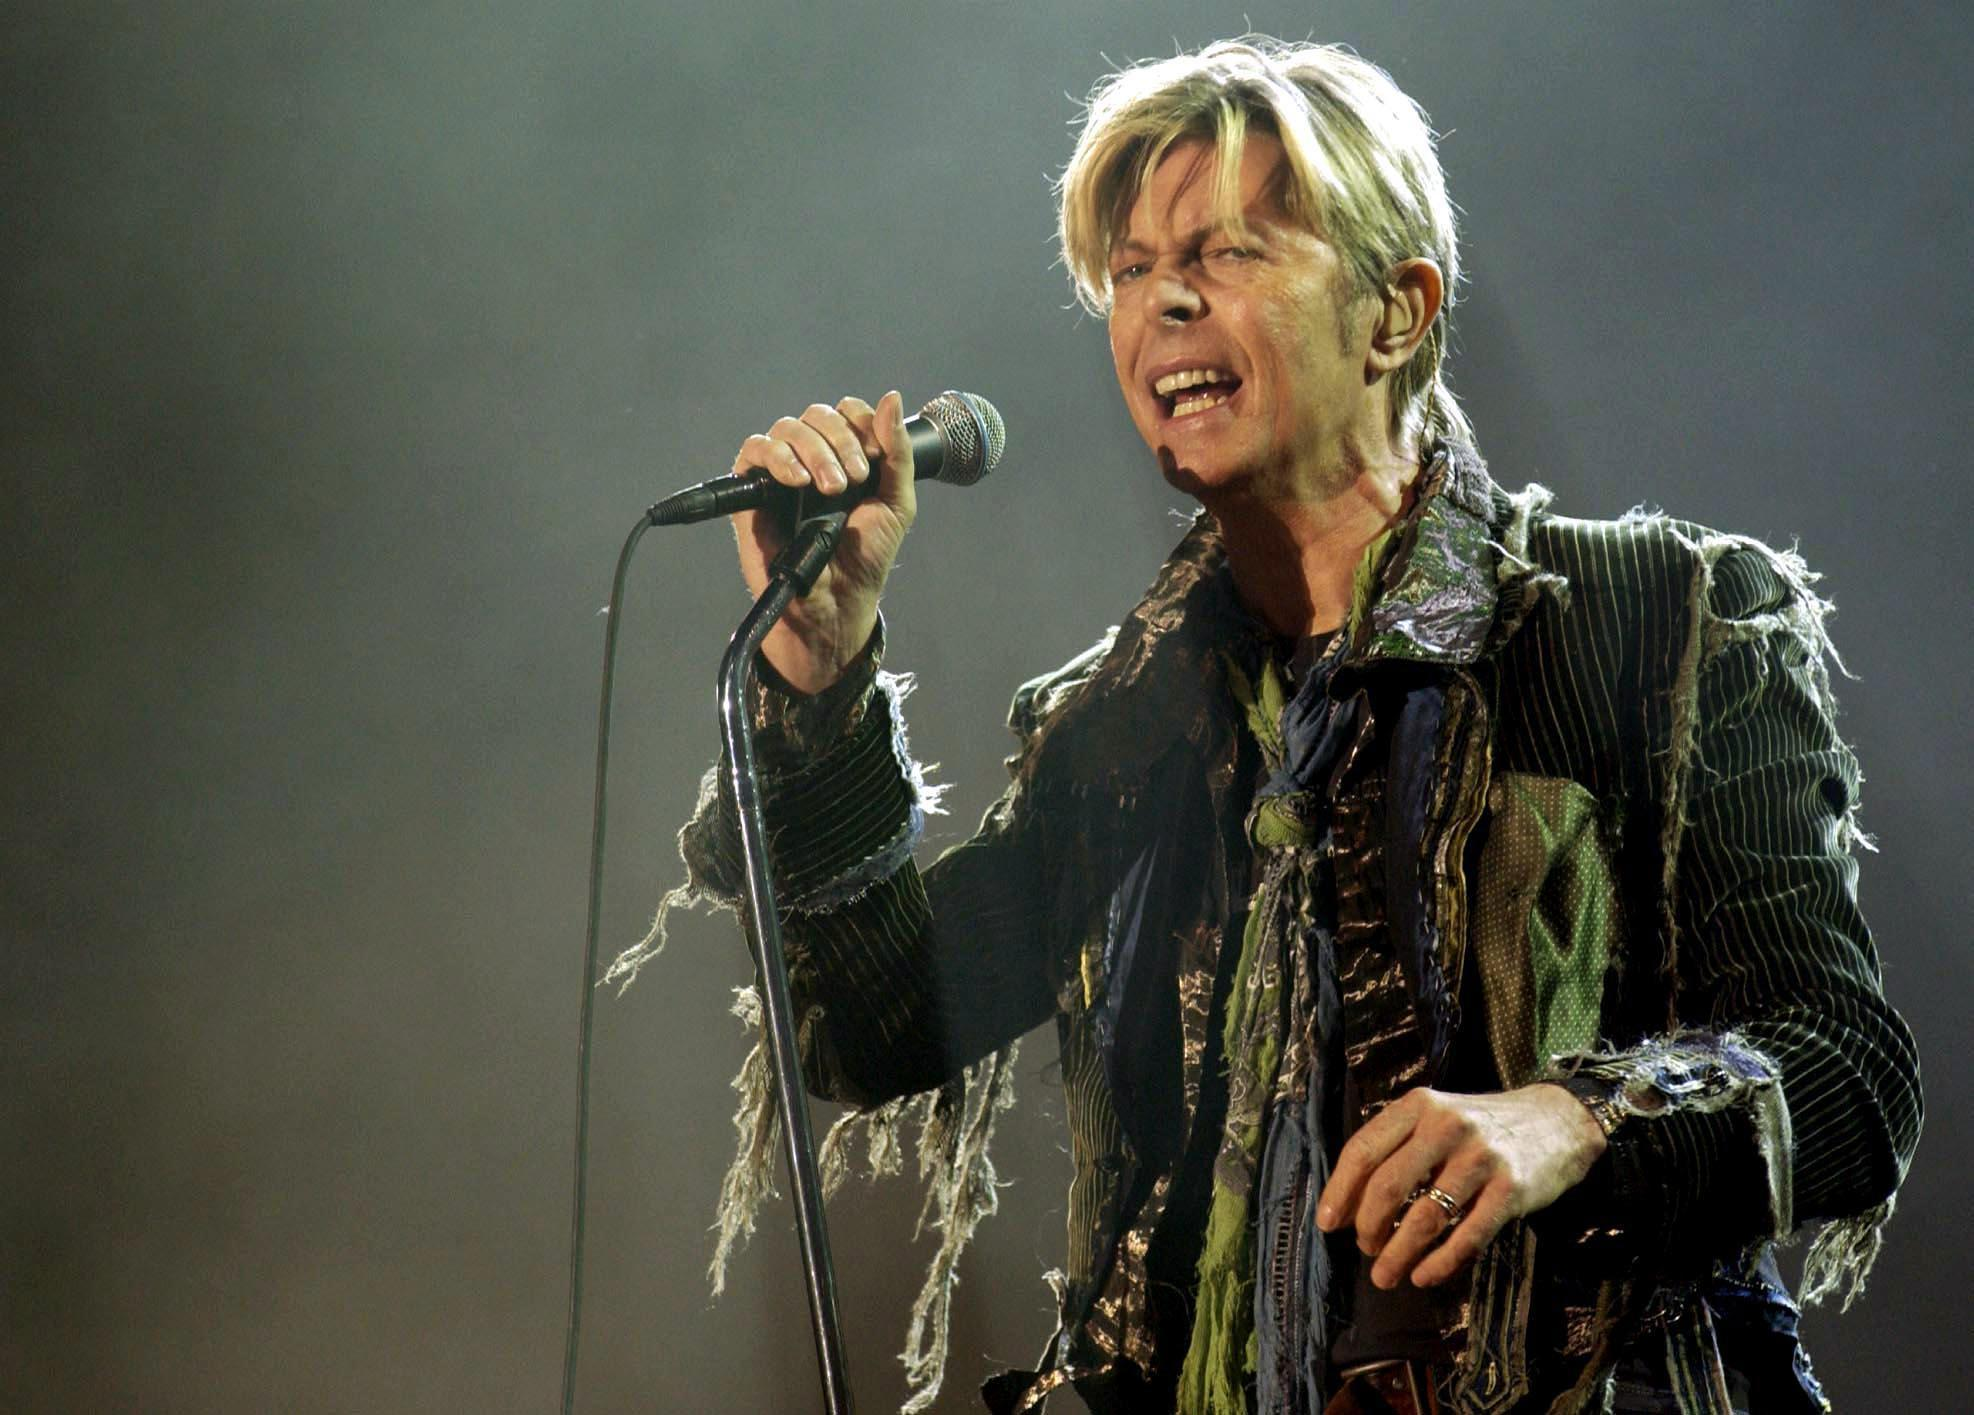 David Bowie's Last Music Video for